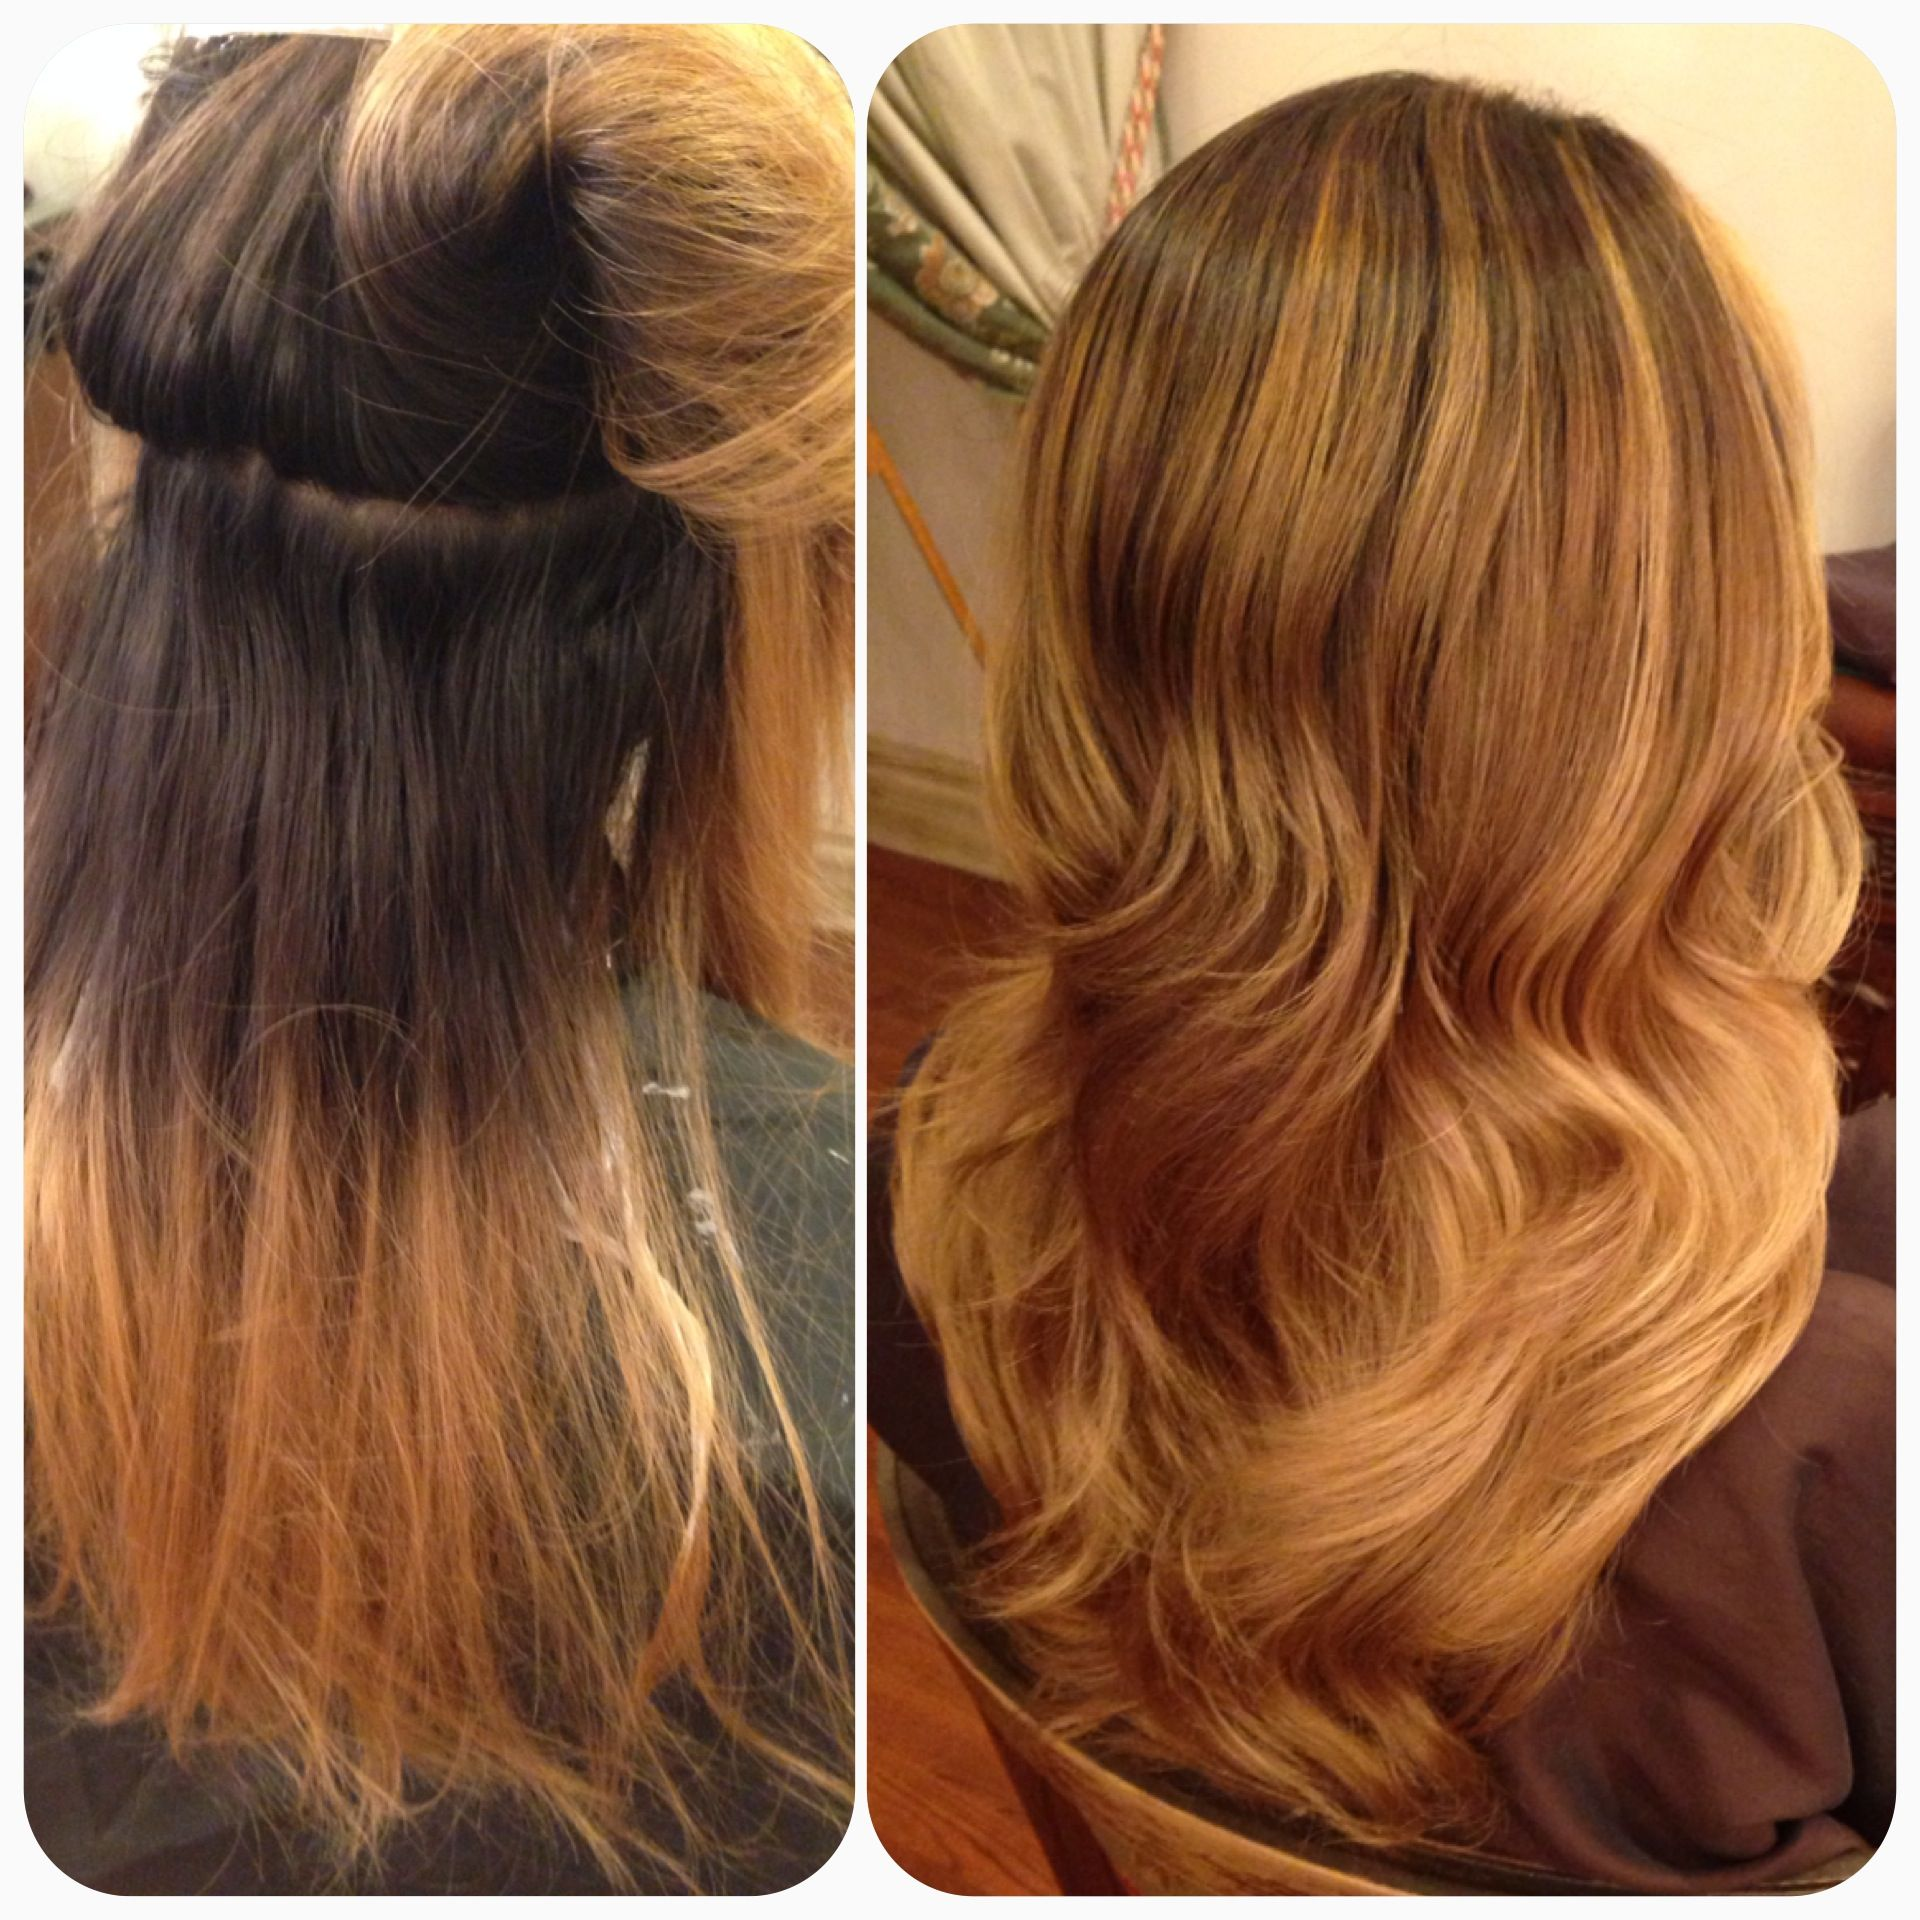 From A Grown Out Root Look To A More Subtle Ombre Gradation Of